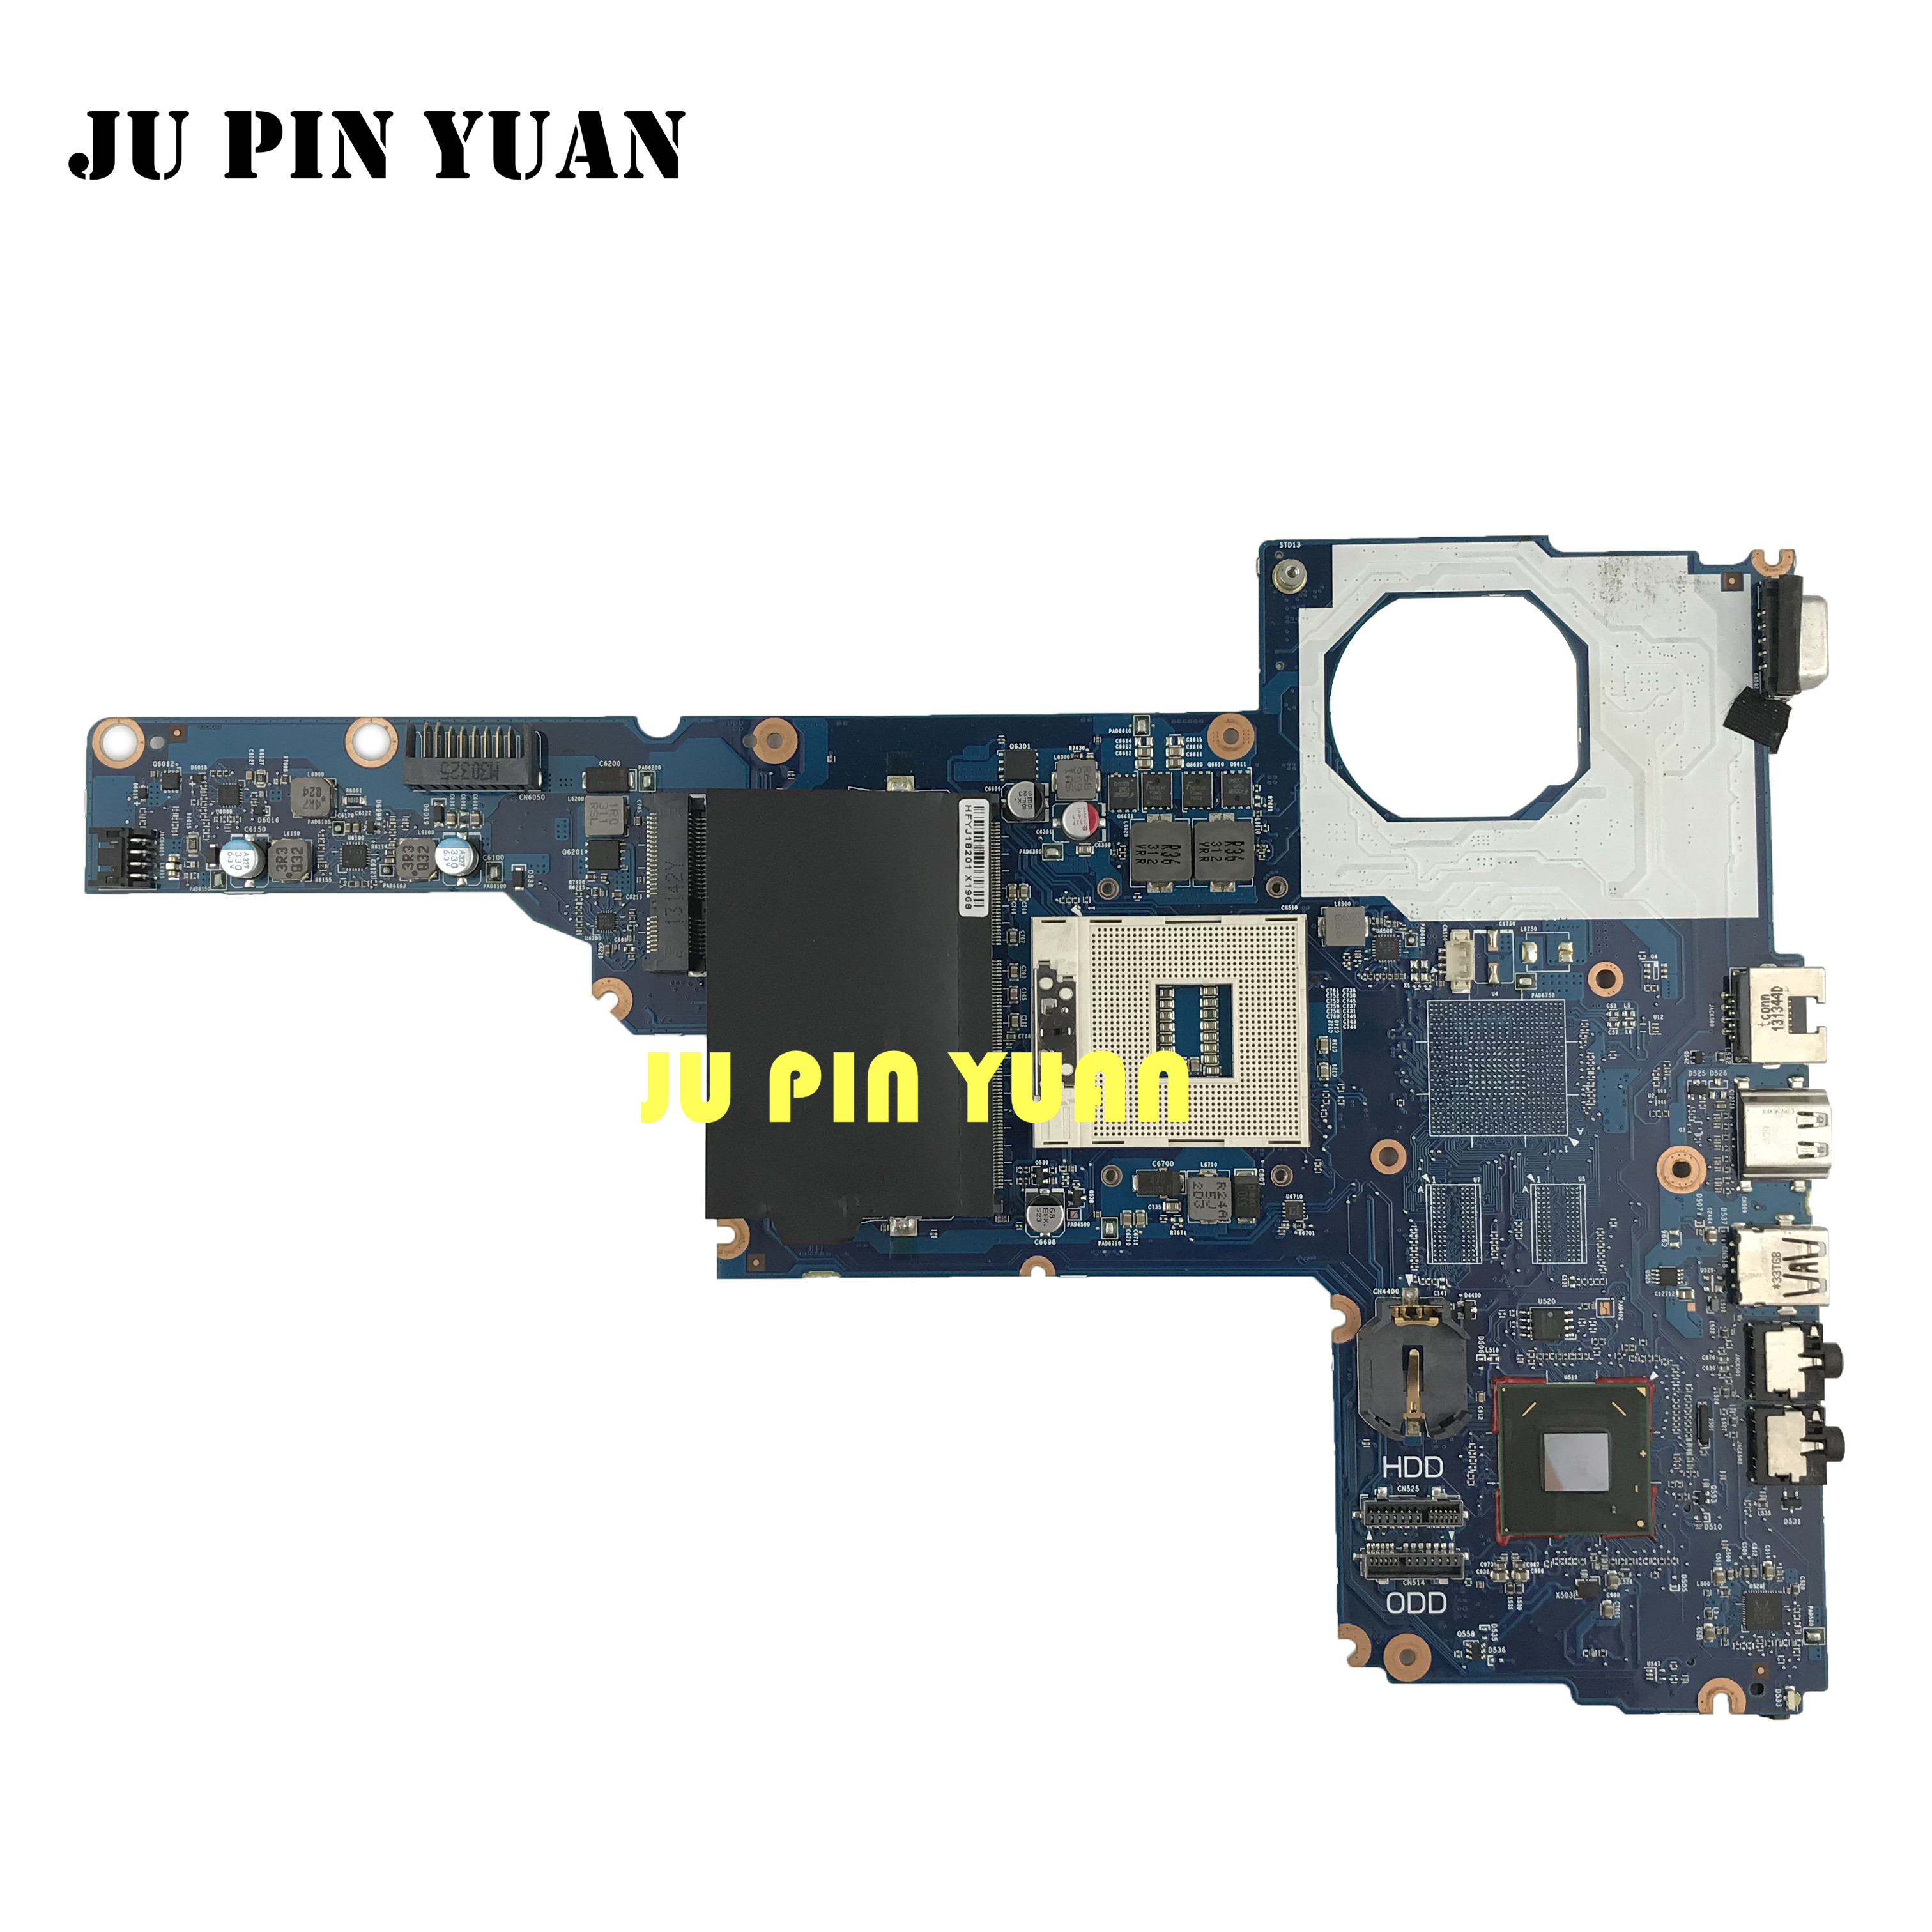 JU PIN YUAN 685107 501 685107 001 mainboard For hp 2000 450  laptop motherboard 6050A2493101 MB A02 All functions fully Tested|Motherboards| |  - title=